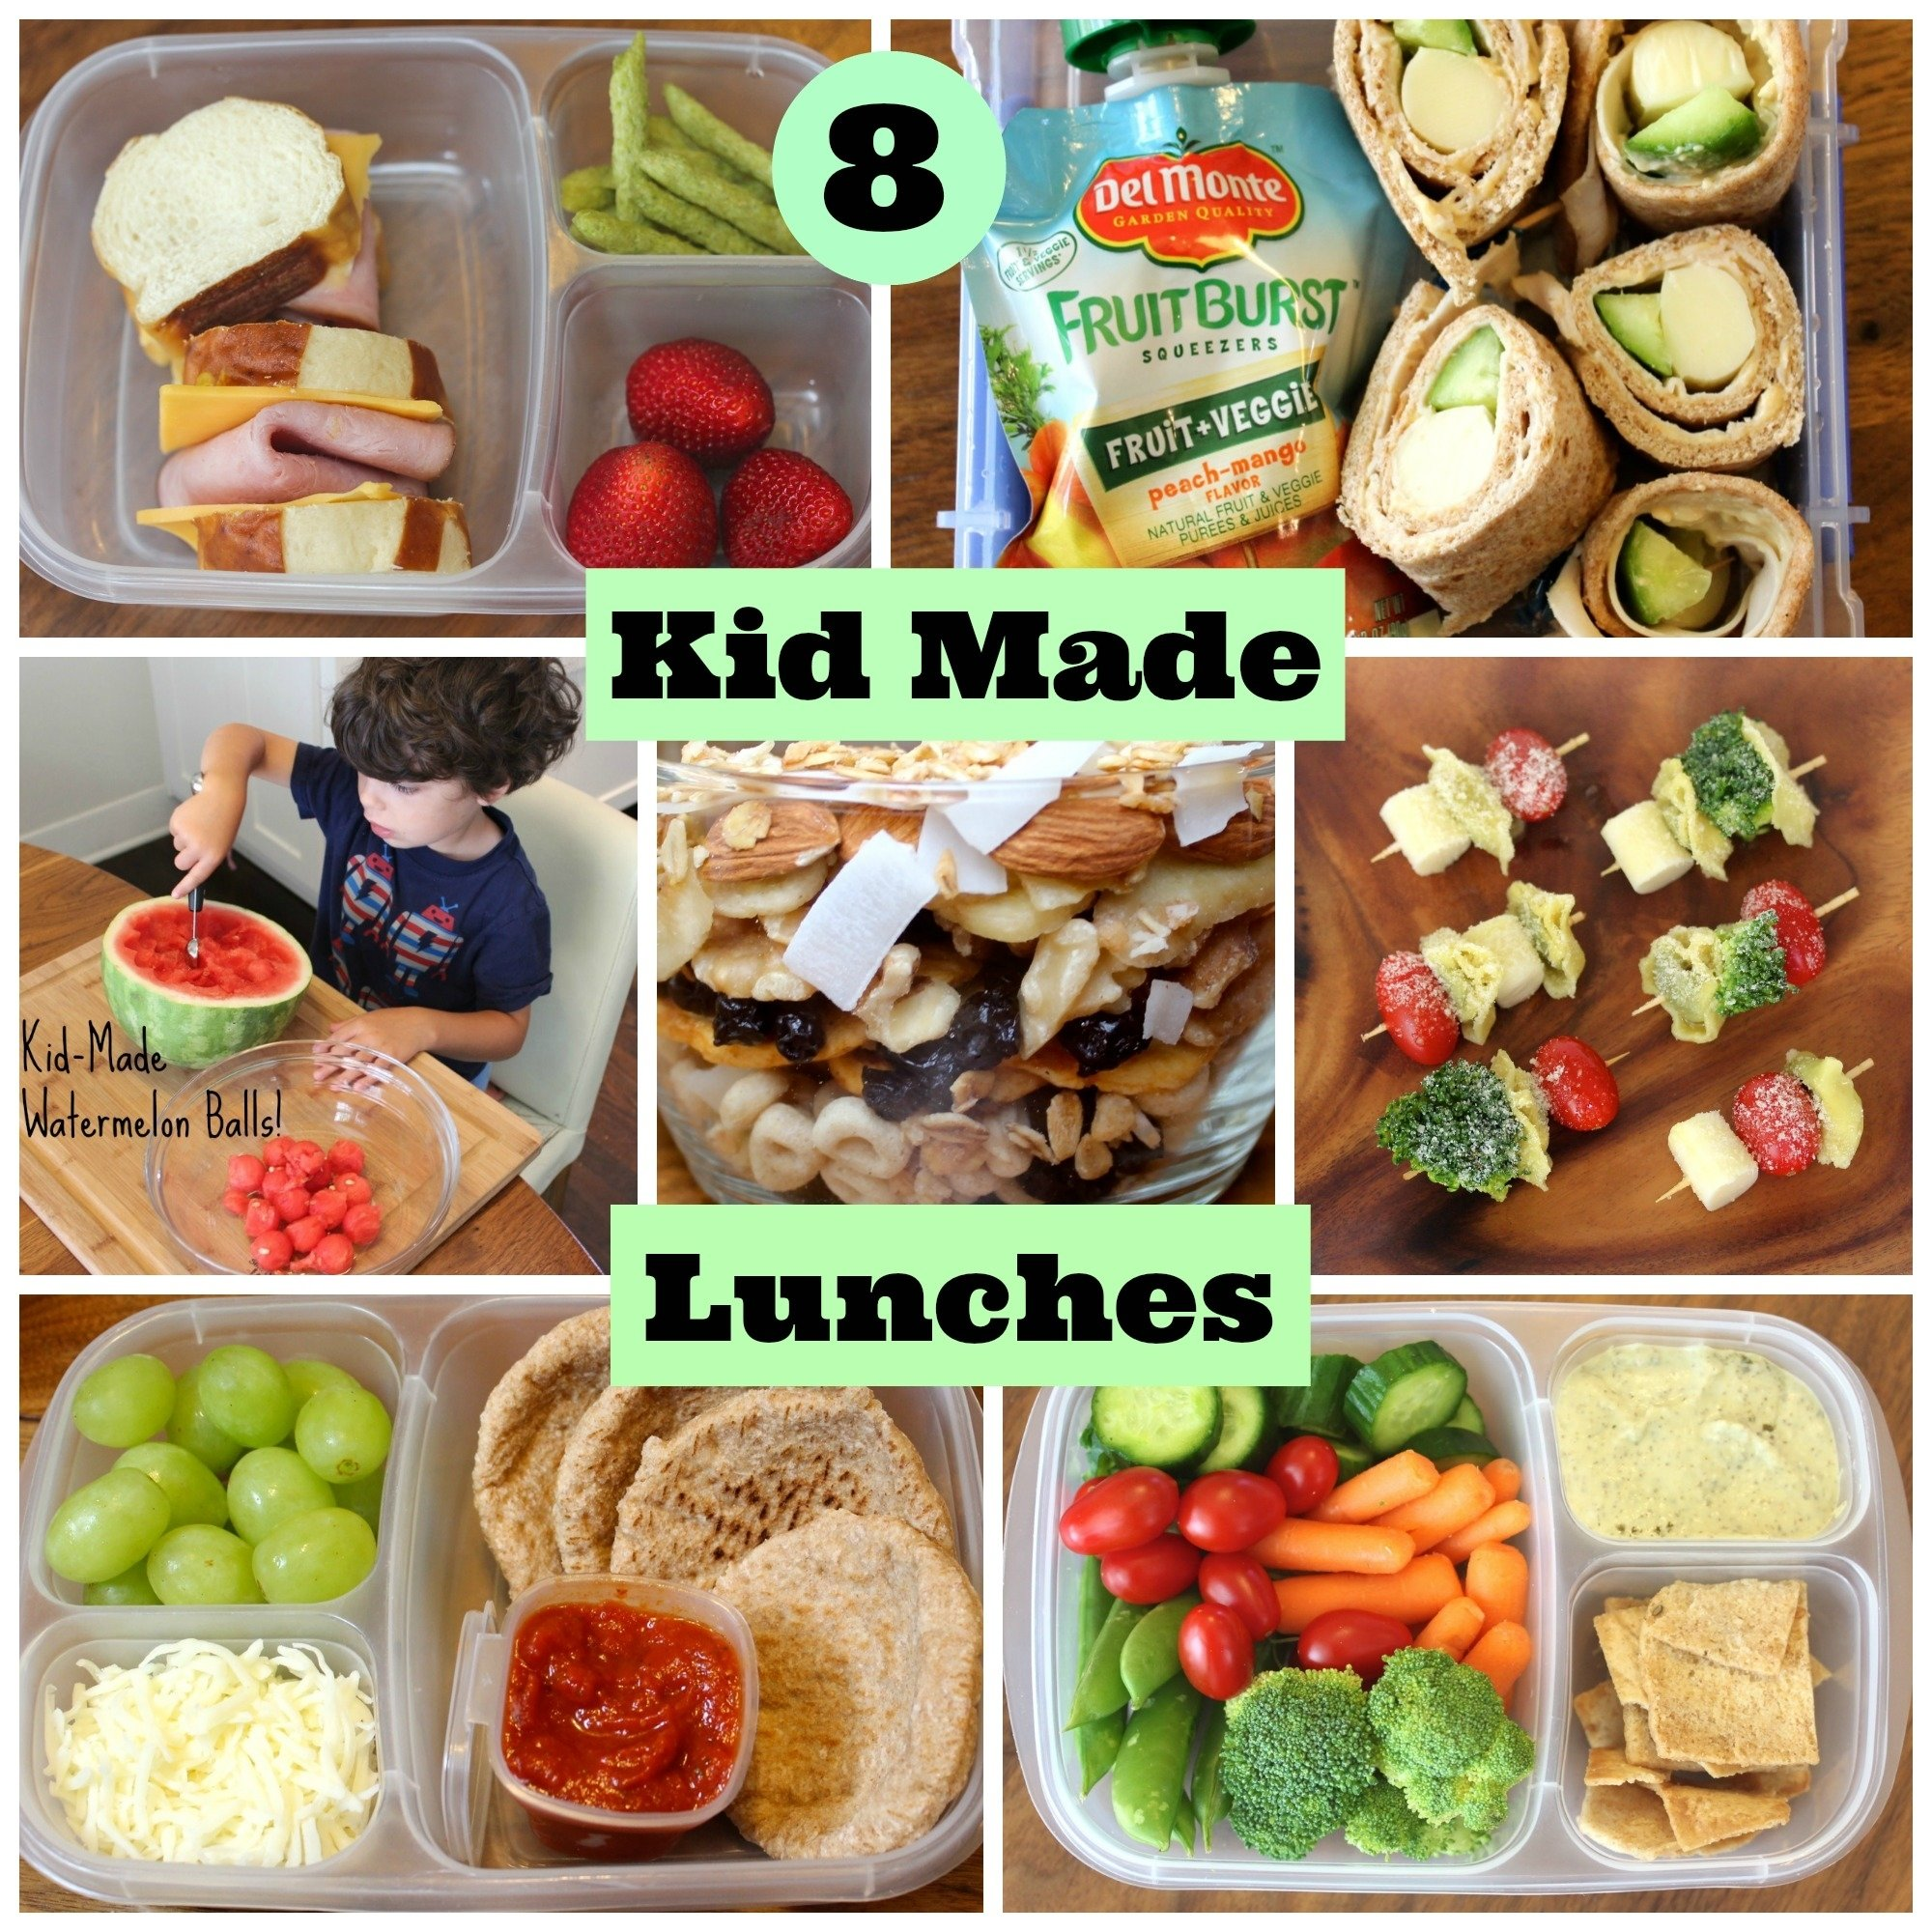 10 Amazing Healthy Lunch Ideas For Kids 4 healthy school lunches your kids can make themselves babble 7 2020